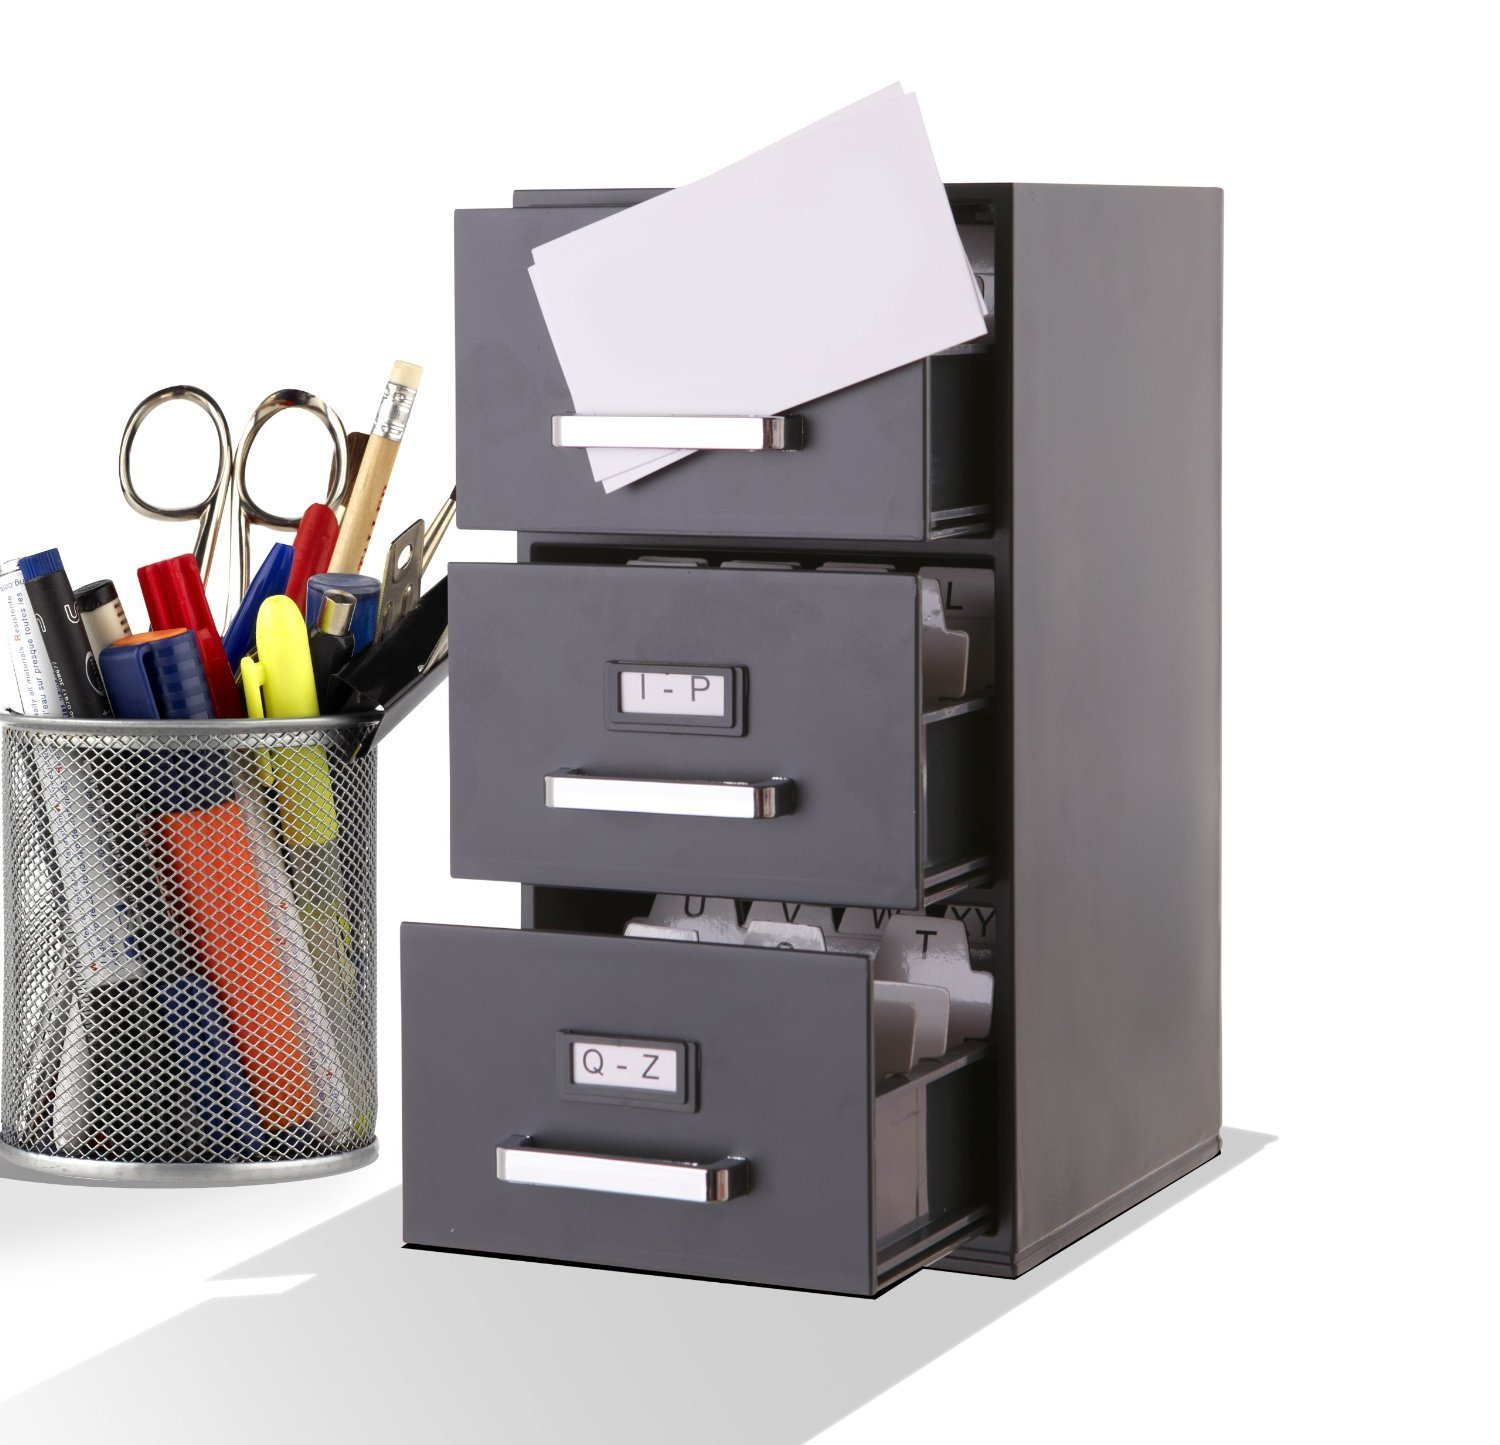 Index Card Filing Products | Amazon.com | Office & School Supplies ...